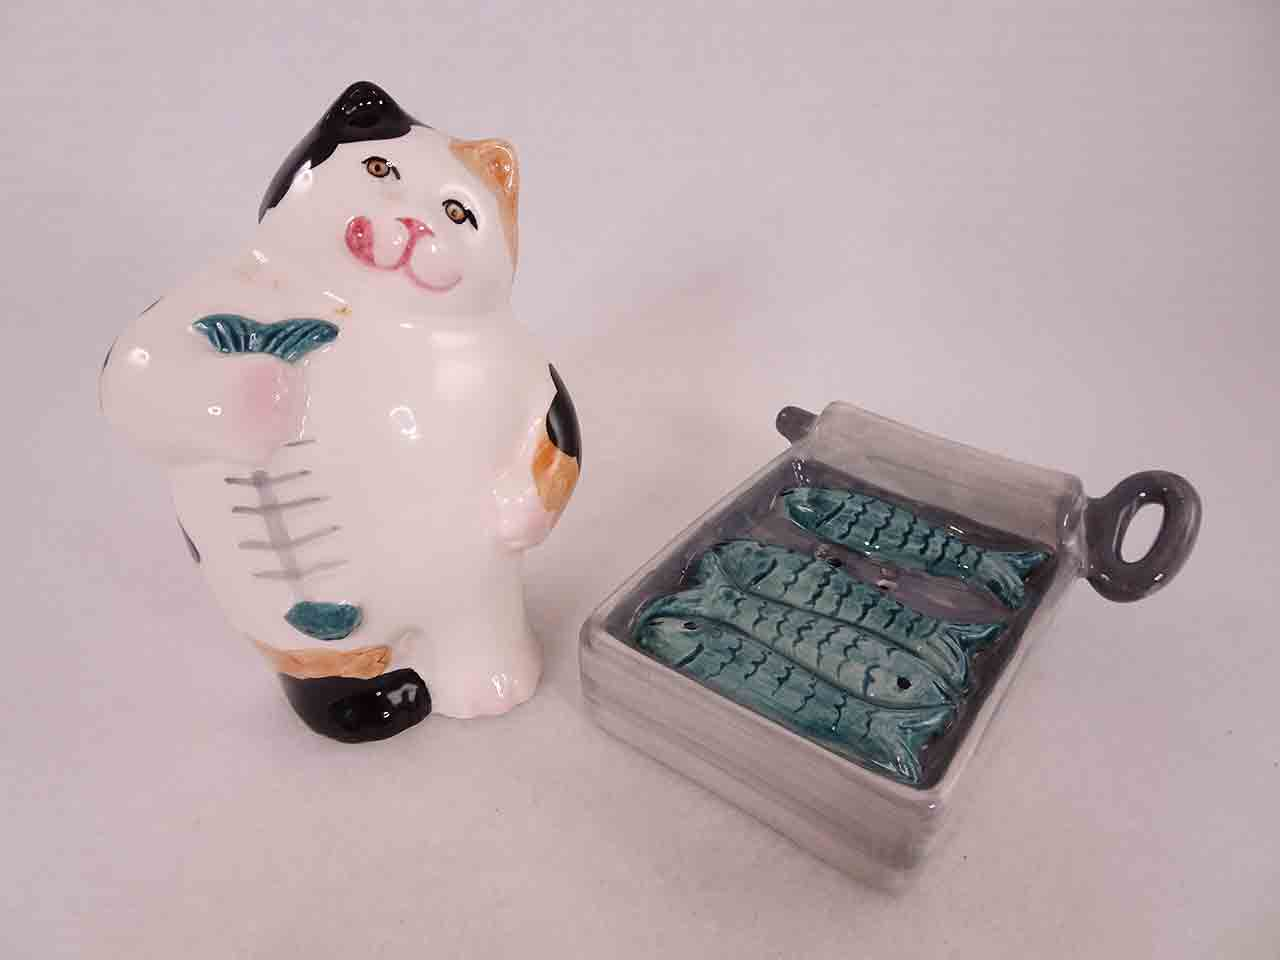 Clay Art cat with open can of sardines by Clay Art salt and pepper shakers